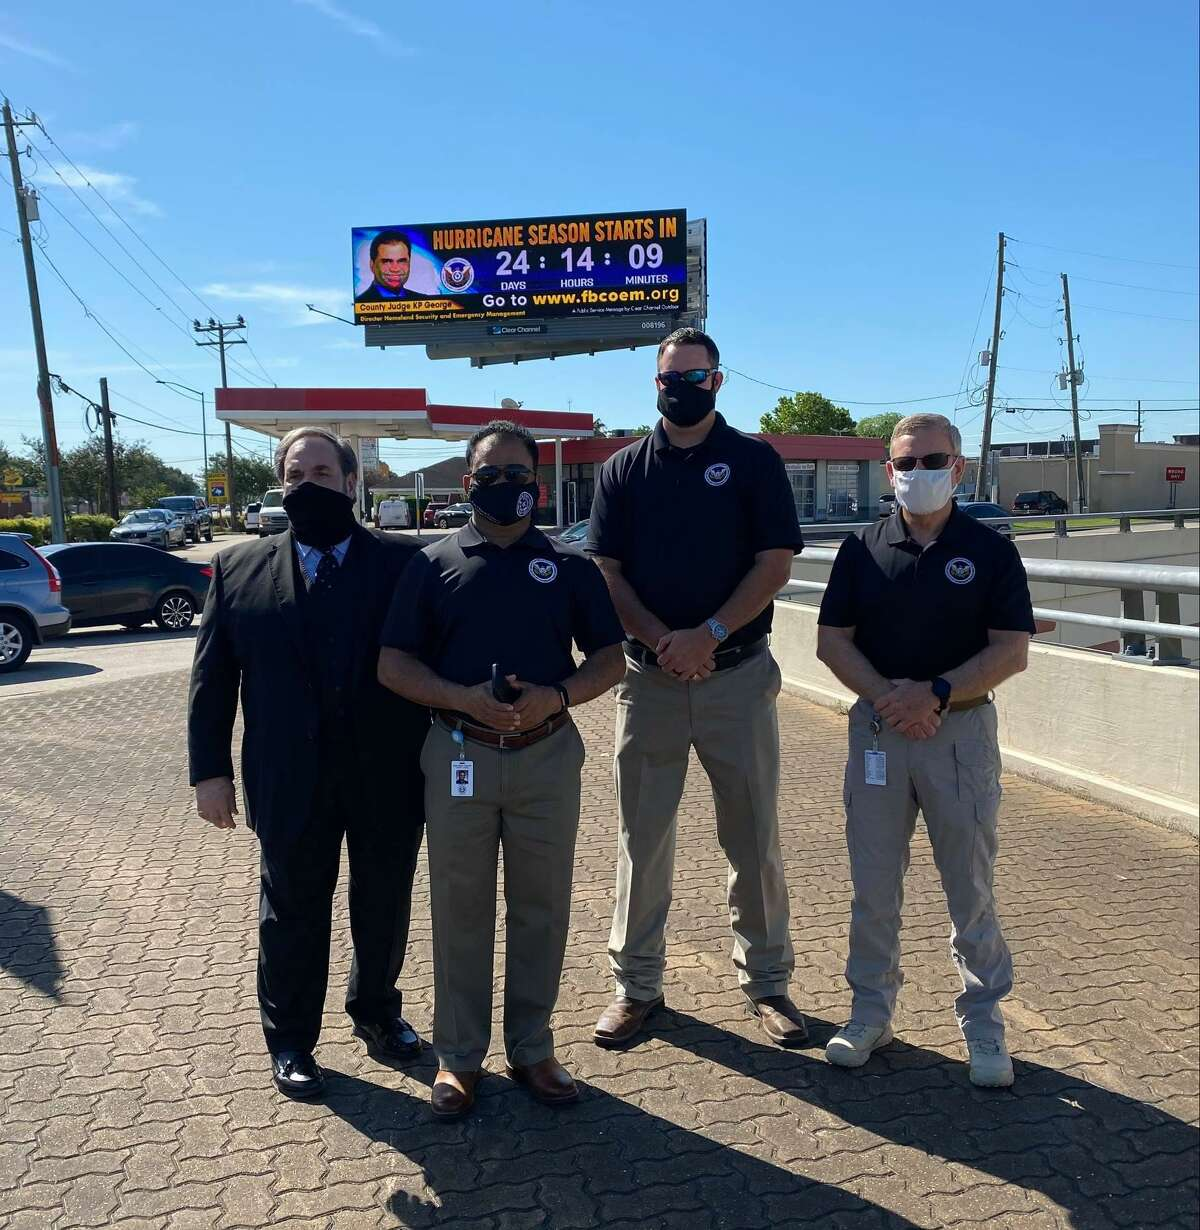 Pictured from left are Lee Vela, Clear Channel Outdoor; Fort Bend County Judge KP George; Mark Flathouse, fire marshal and emergency management coordinator at Fort Bend County; and Alan Spears, deputy emergency management coordinator at Fort Bend County.